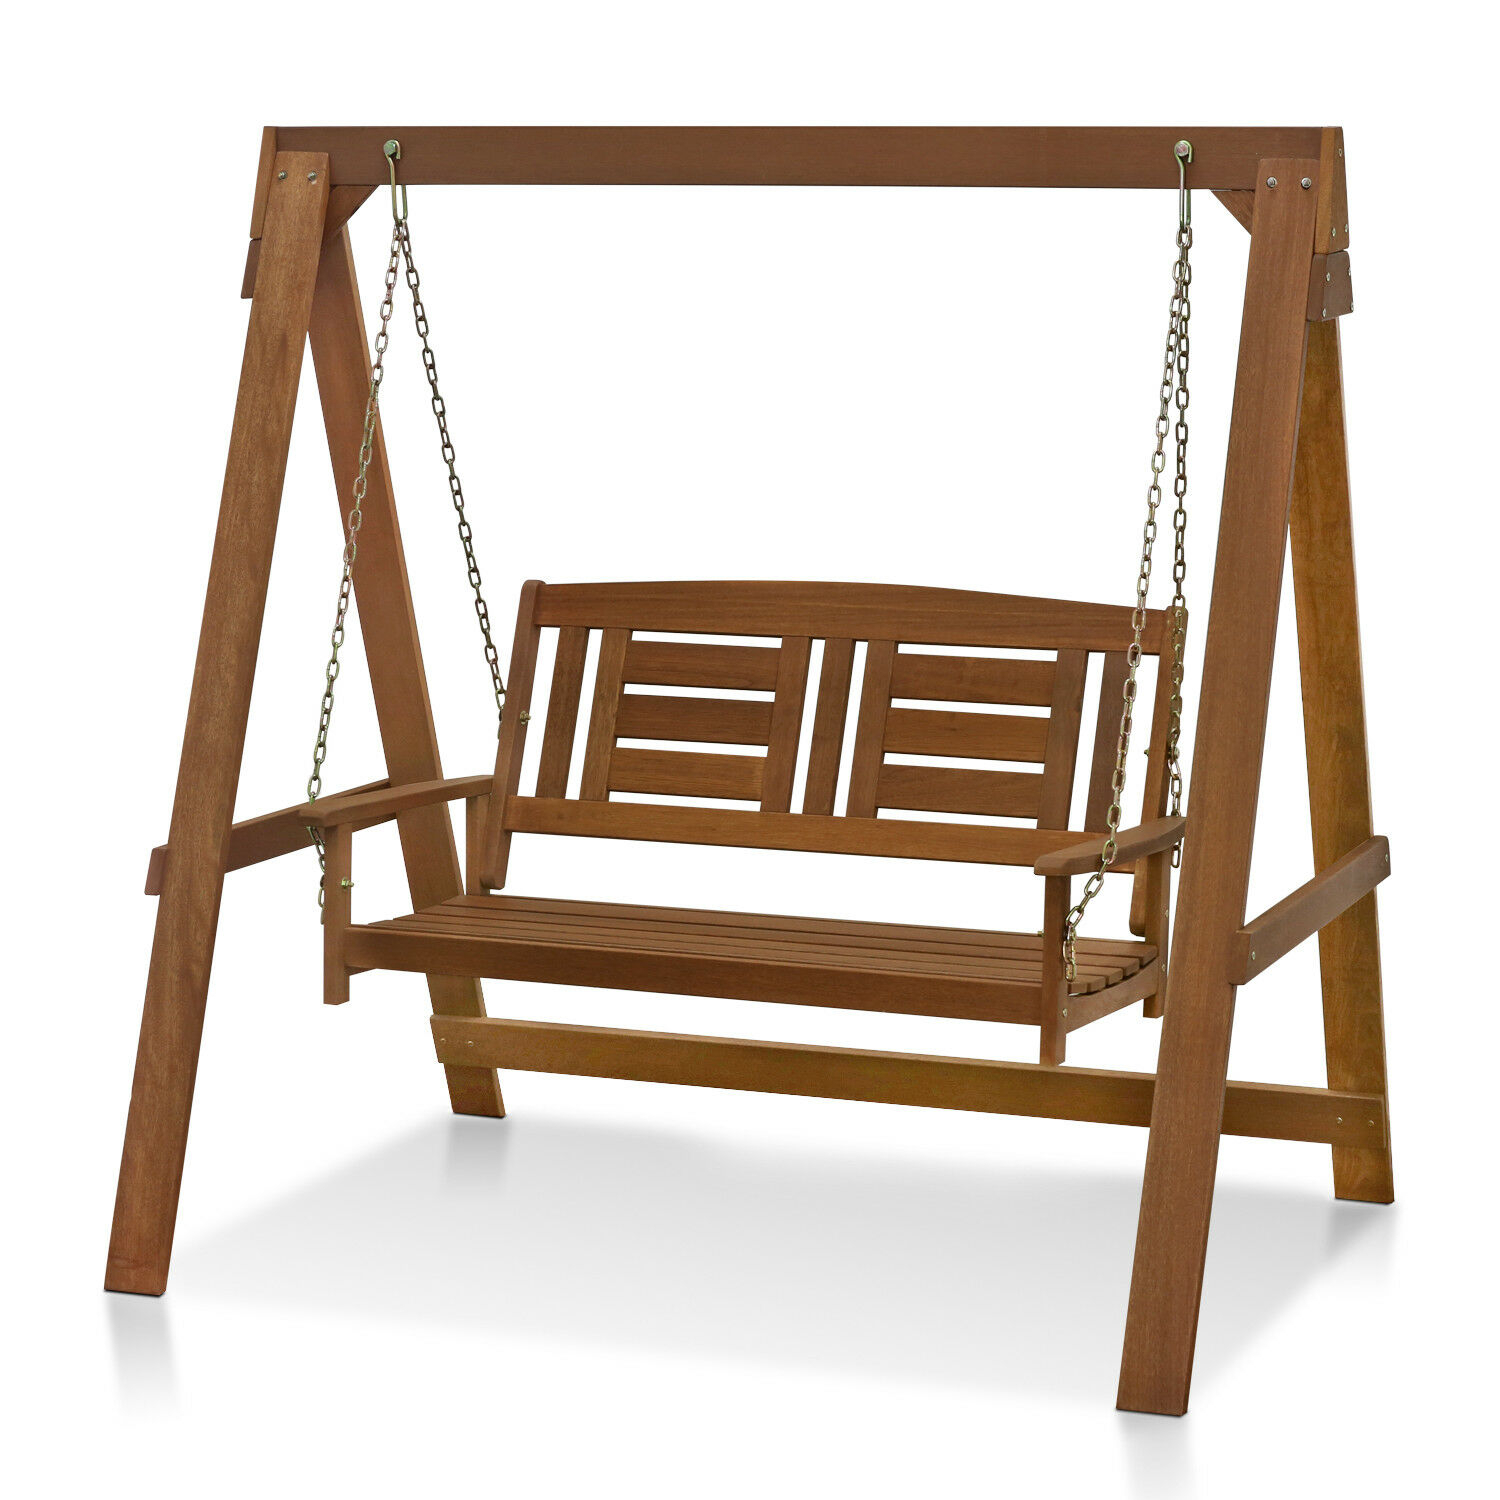 Furinno Tioman Hardwood Hanging Porch Swing With Stand, Brown Inside 2 Person Light Teak Oil Wood Outdoor Swings (View 3 of 25)